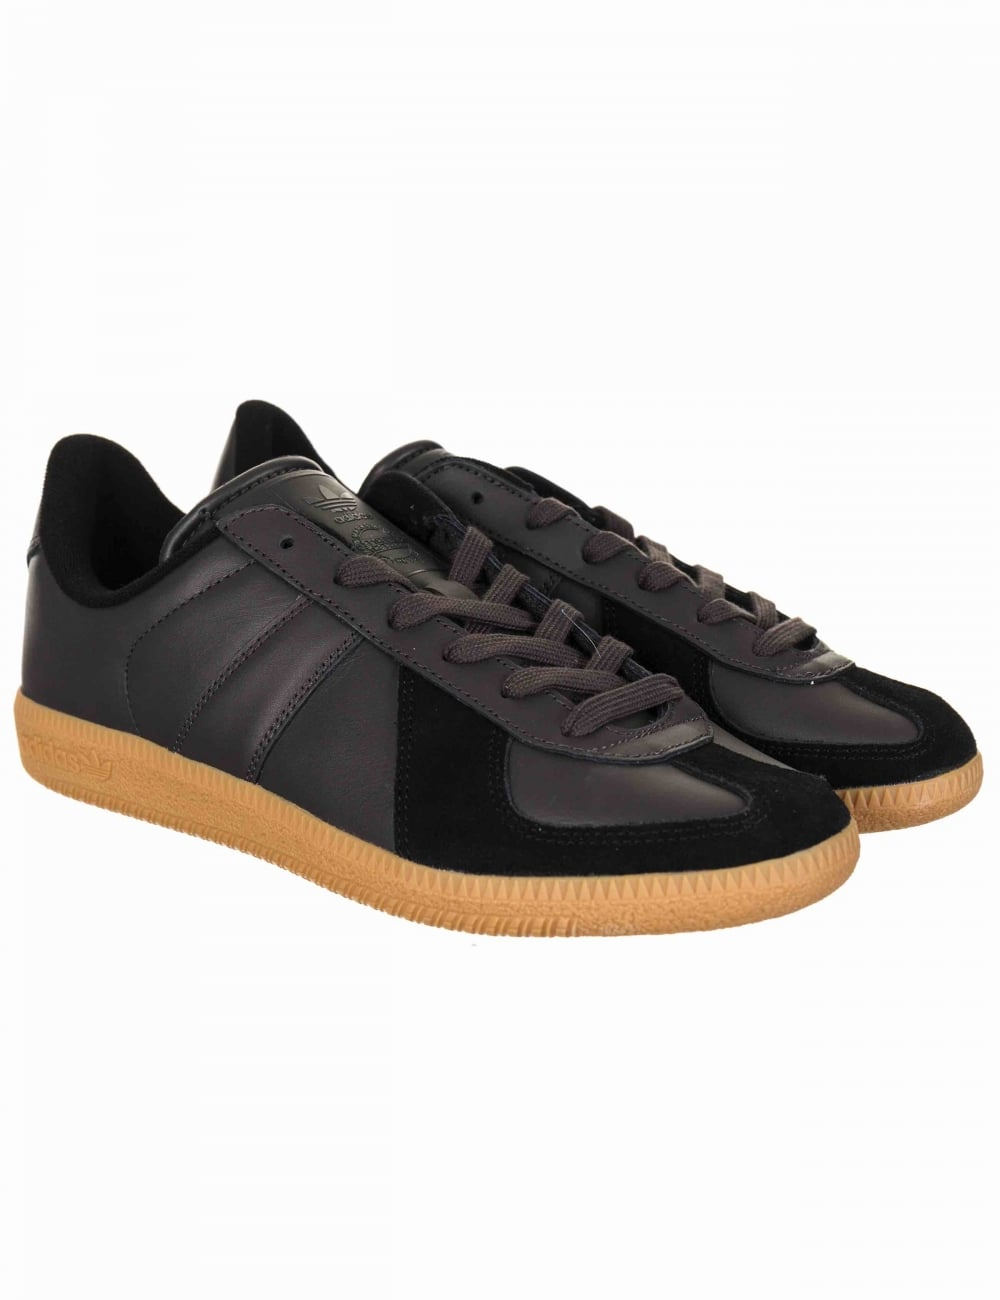 4ae970548135 Adidas Originals BW Army Trainers - Utility Black Gum - Footwear ...